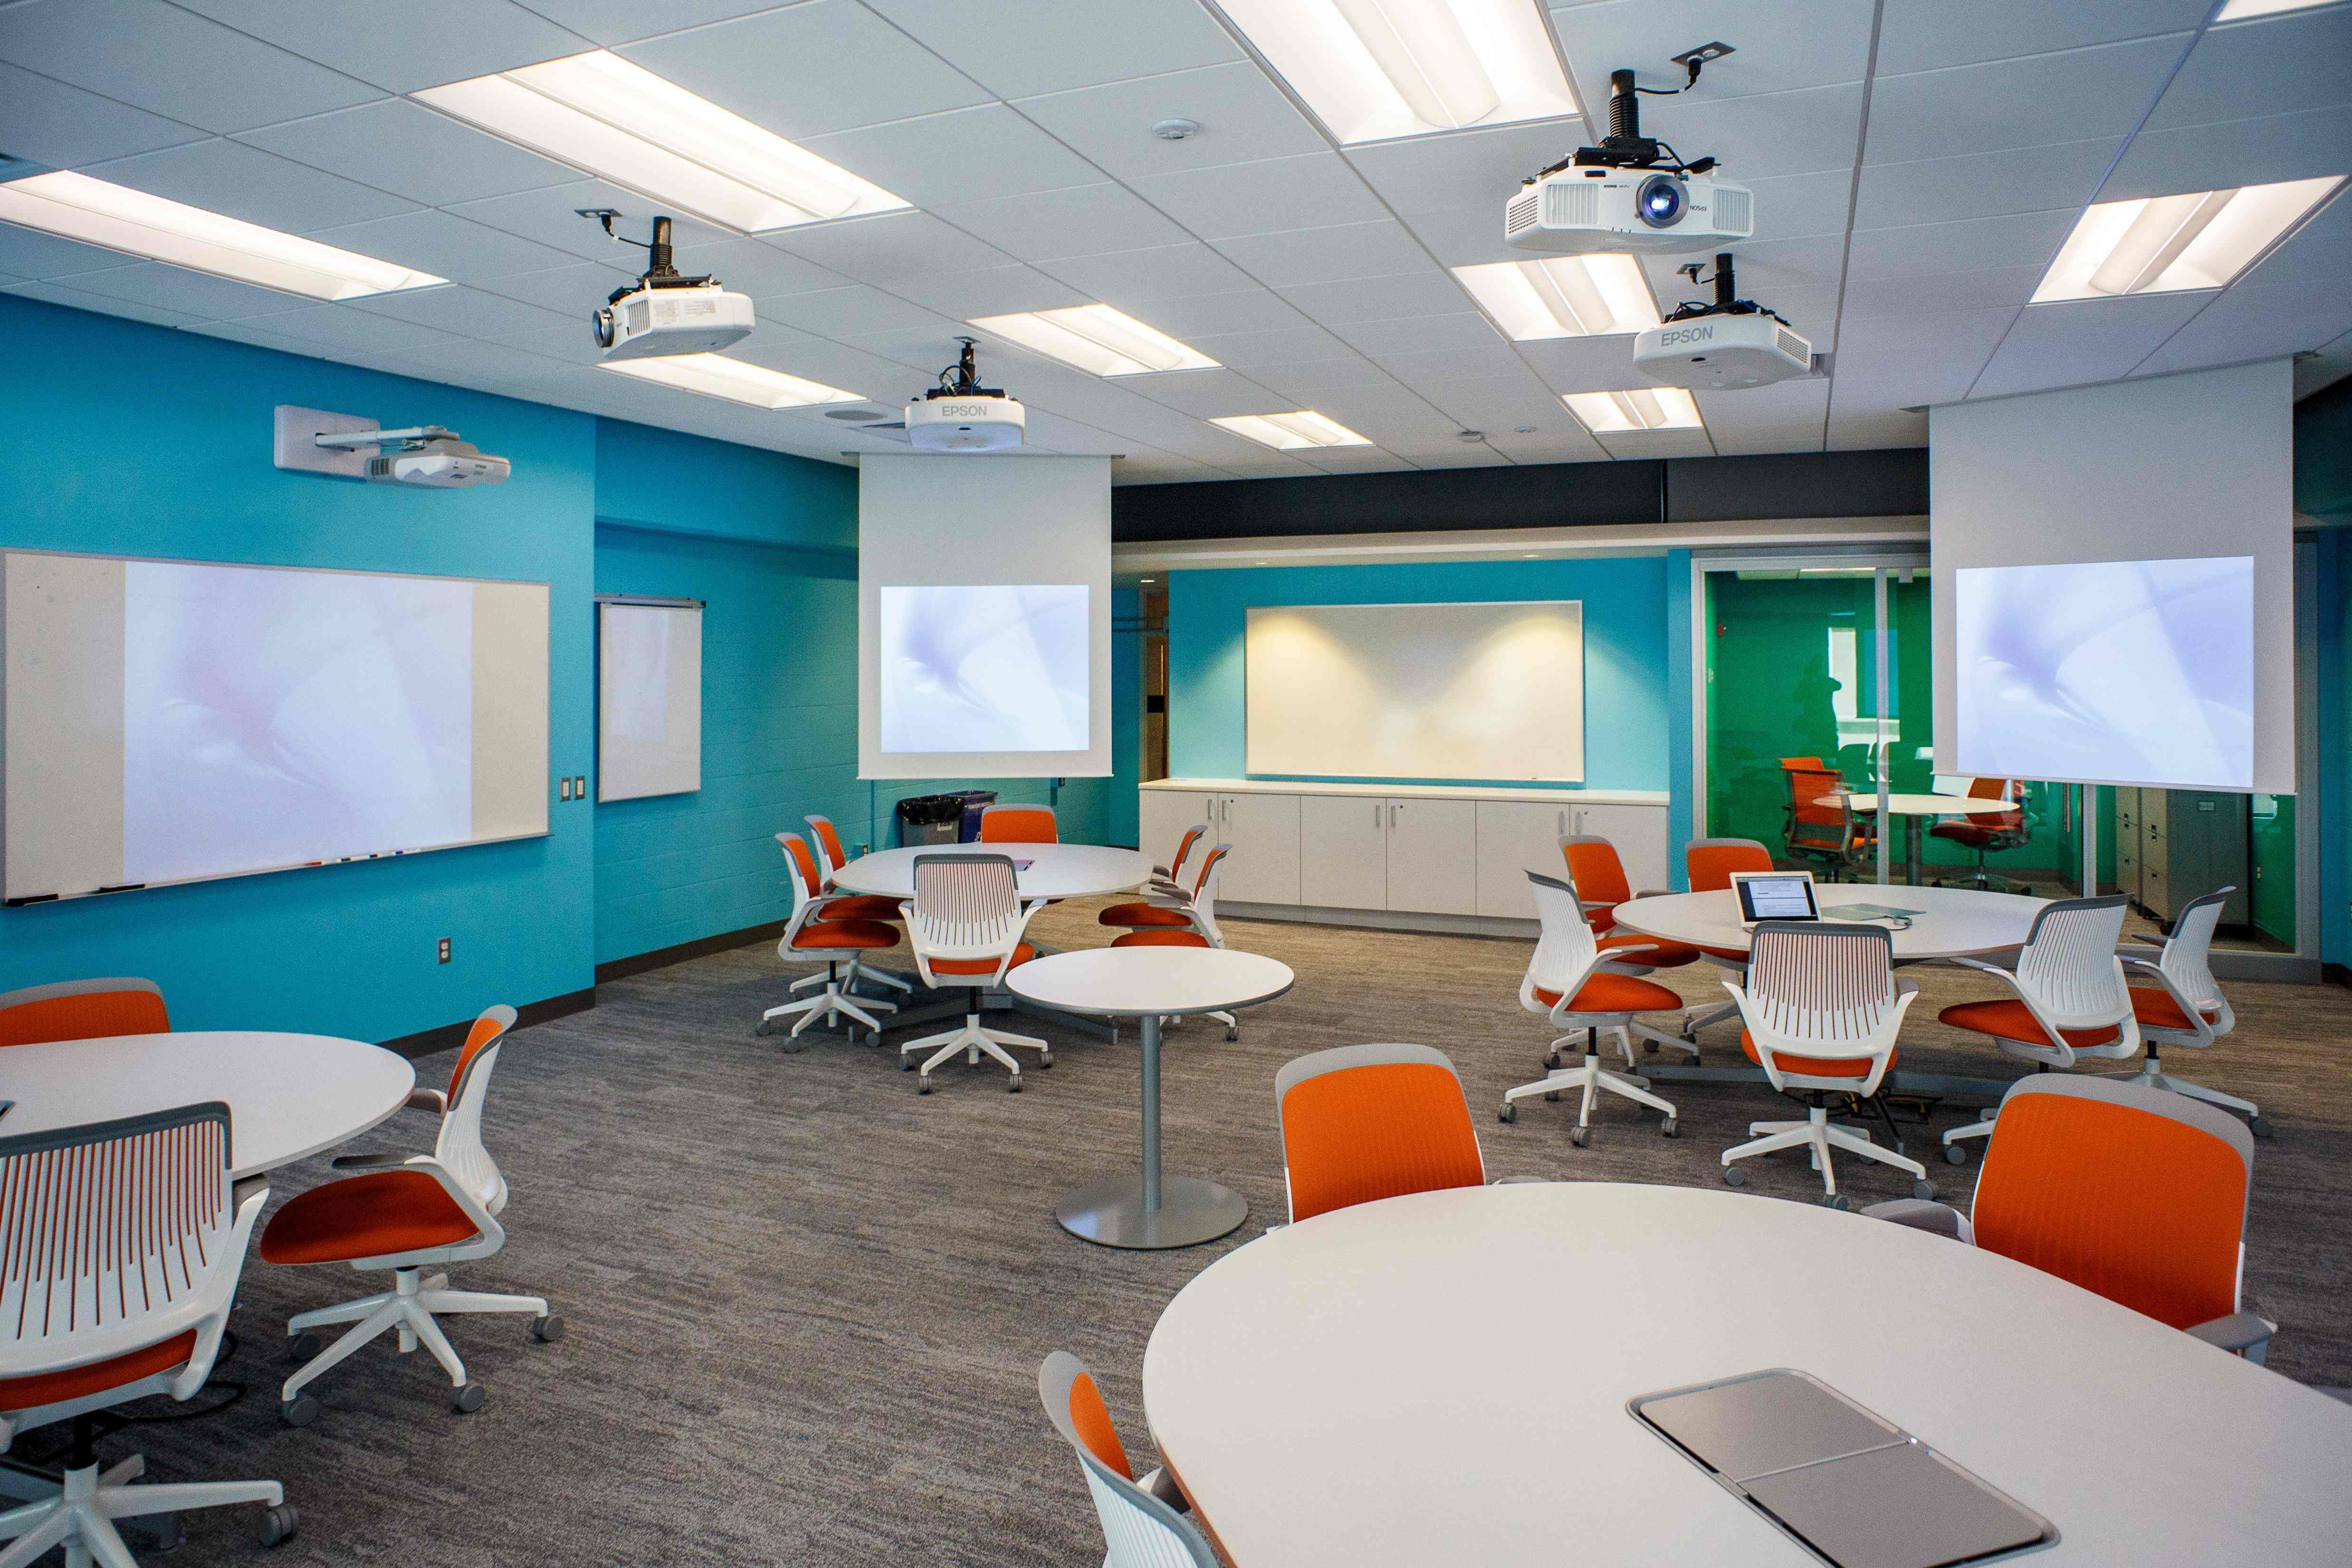 This Learning Space Provides Plenty Of Room And Is Very Warm Inviting With The Many Colors Awesome Lighting Round Tables